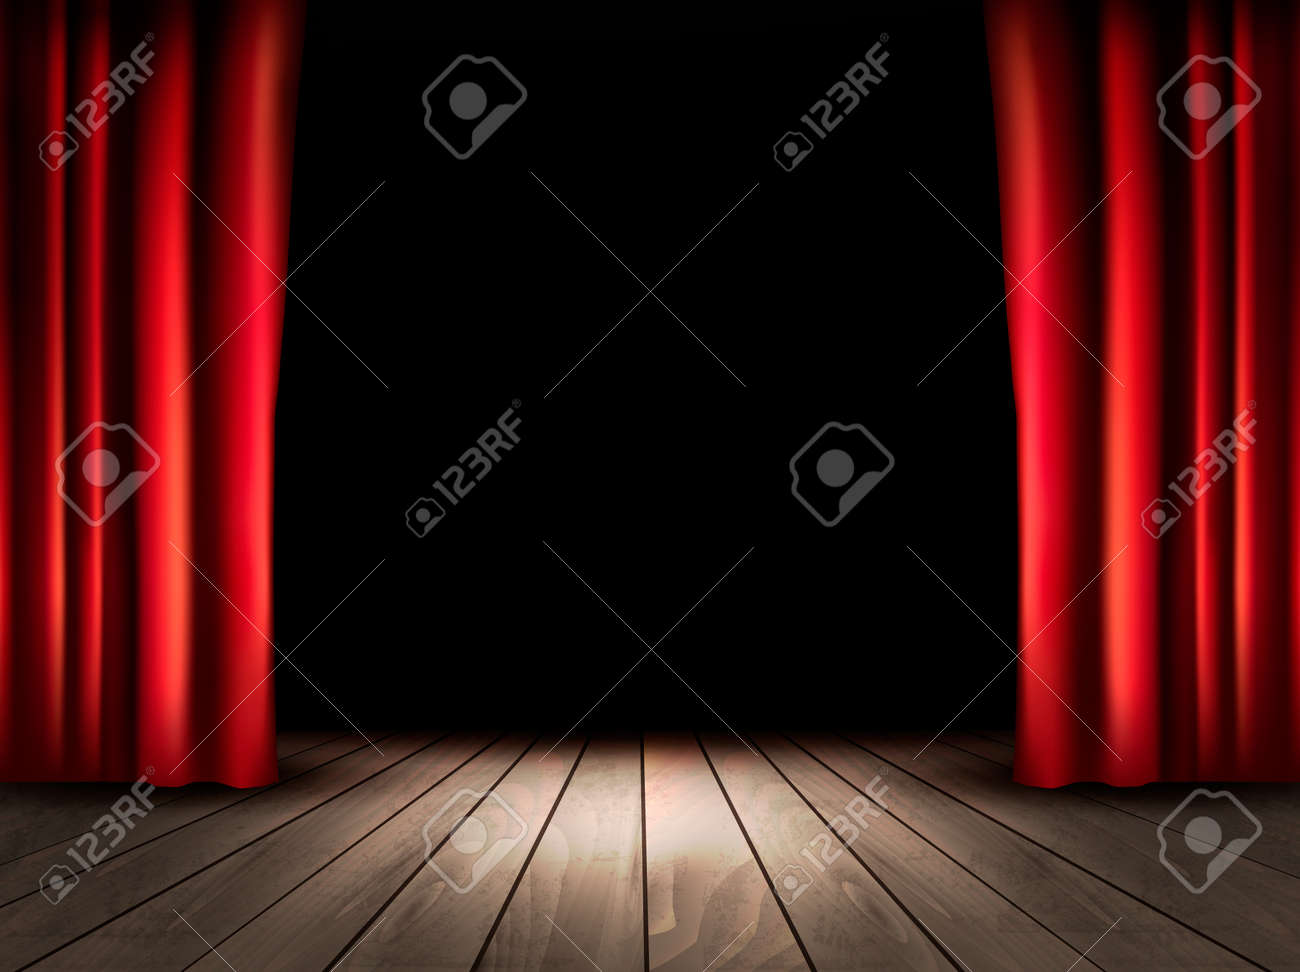 Theater Stage With Wooden Floor And Red Curtains. Vector. Royalty ...